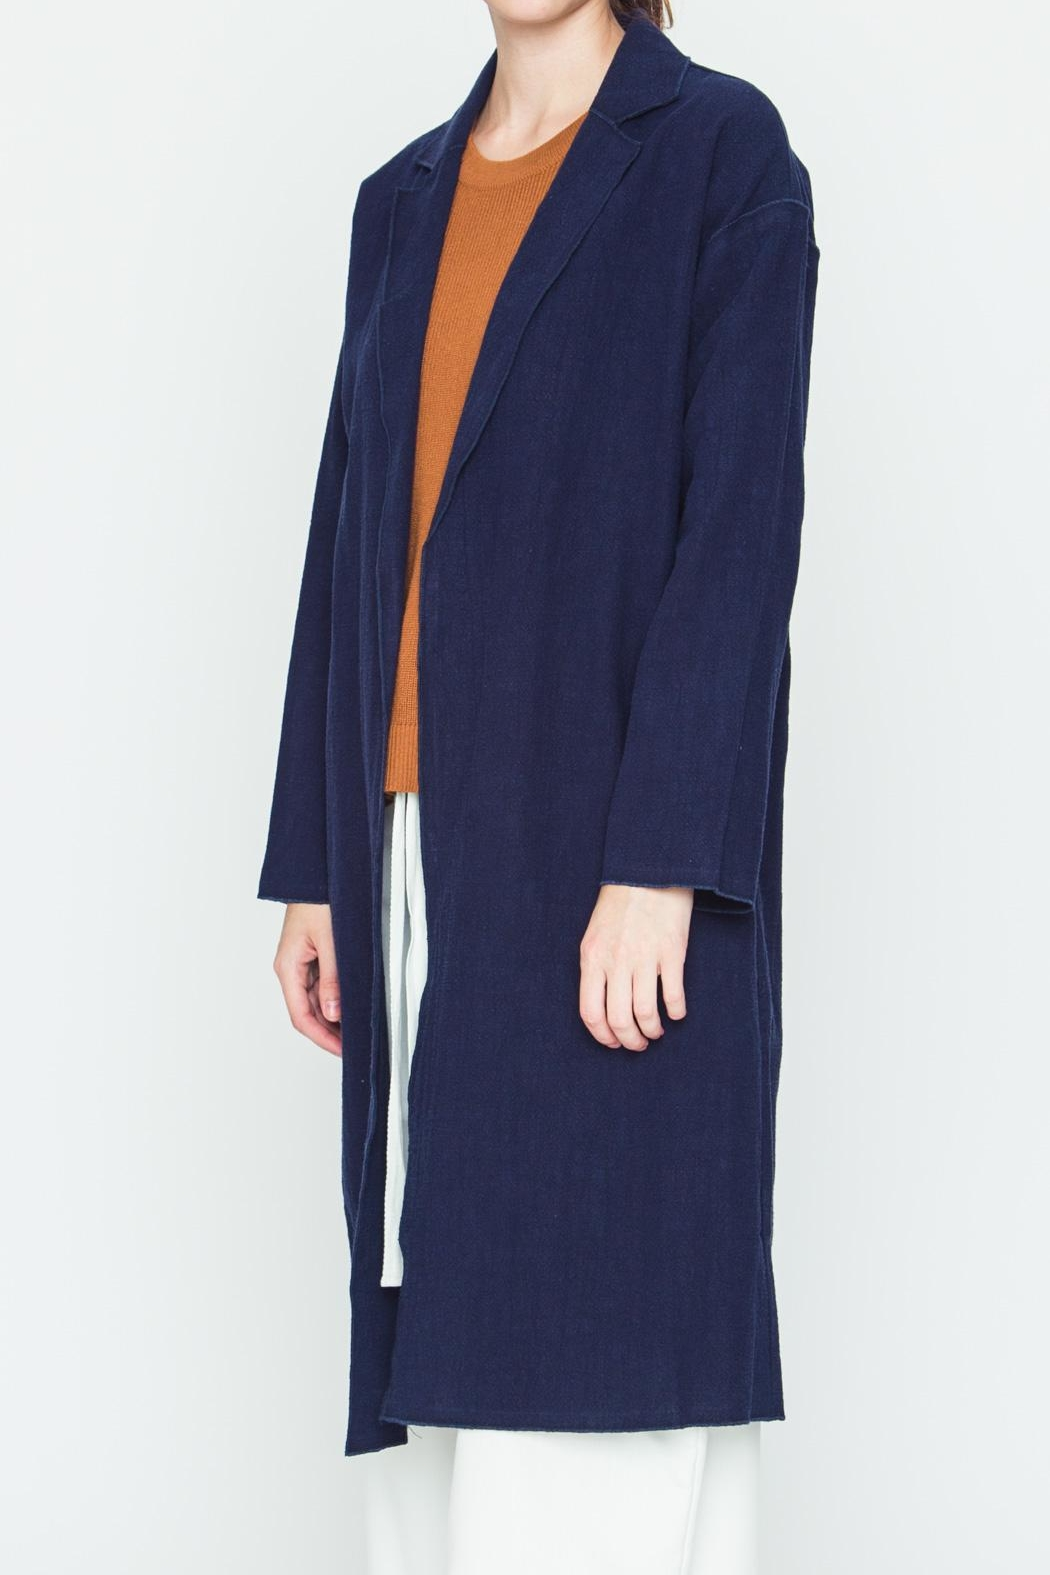 Movint Milano Open-Front Coat - Front Full Image